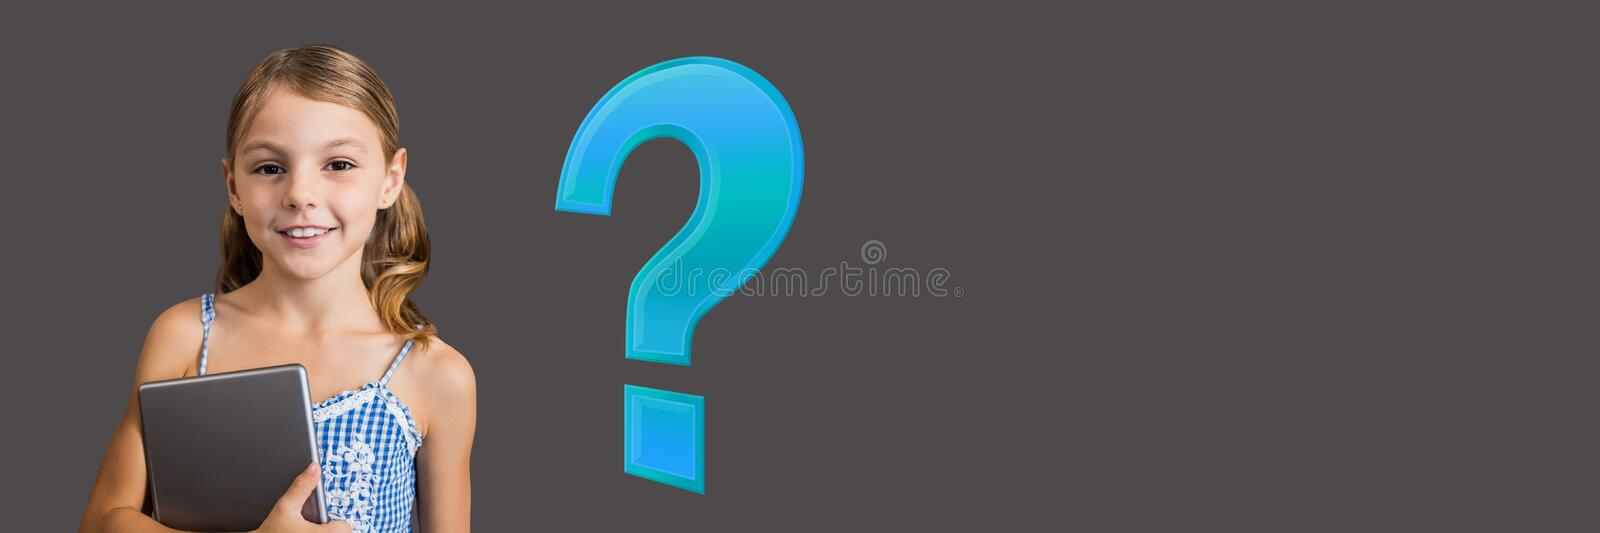 Kid Girl with Blue question mark stock illustration